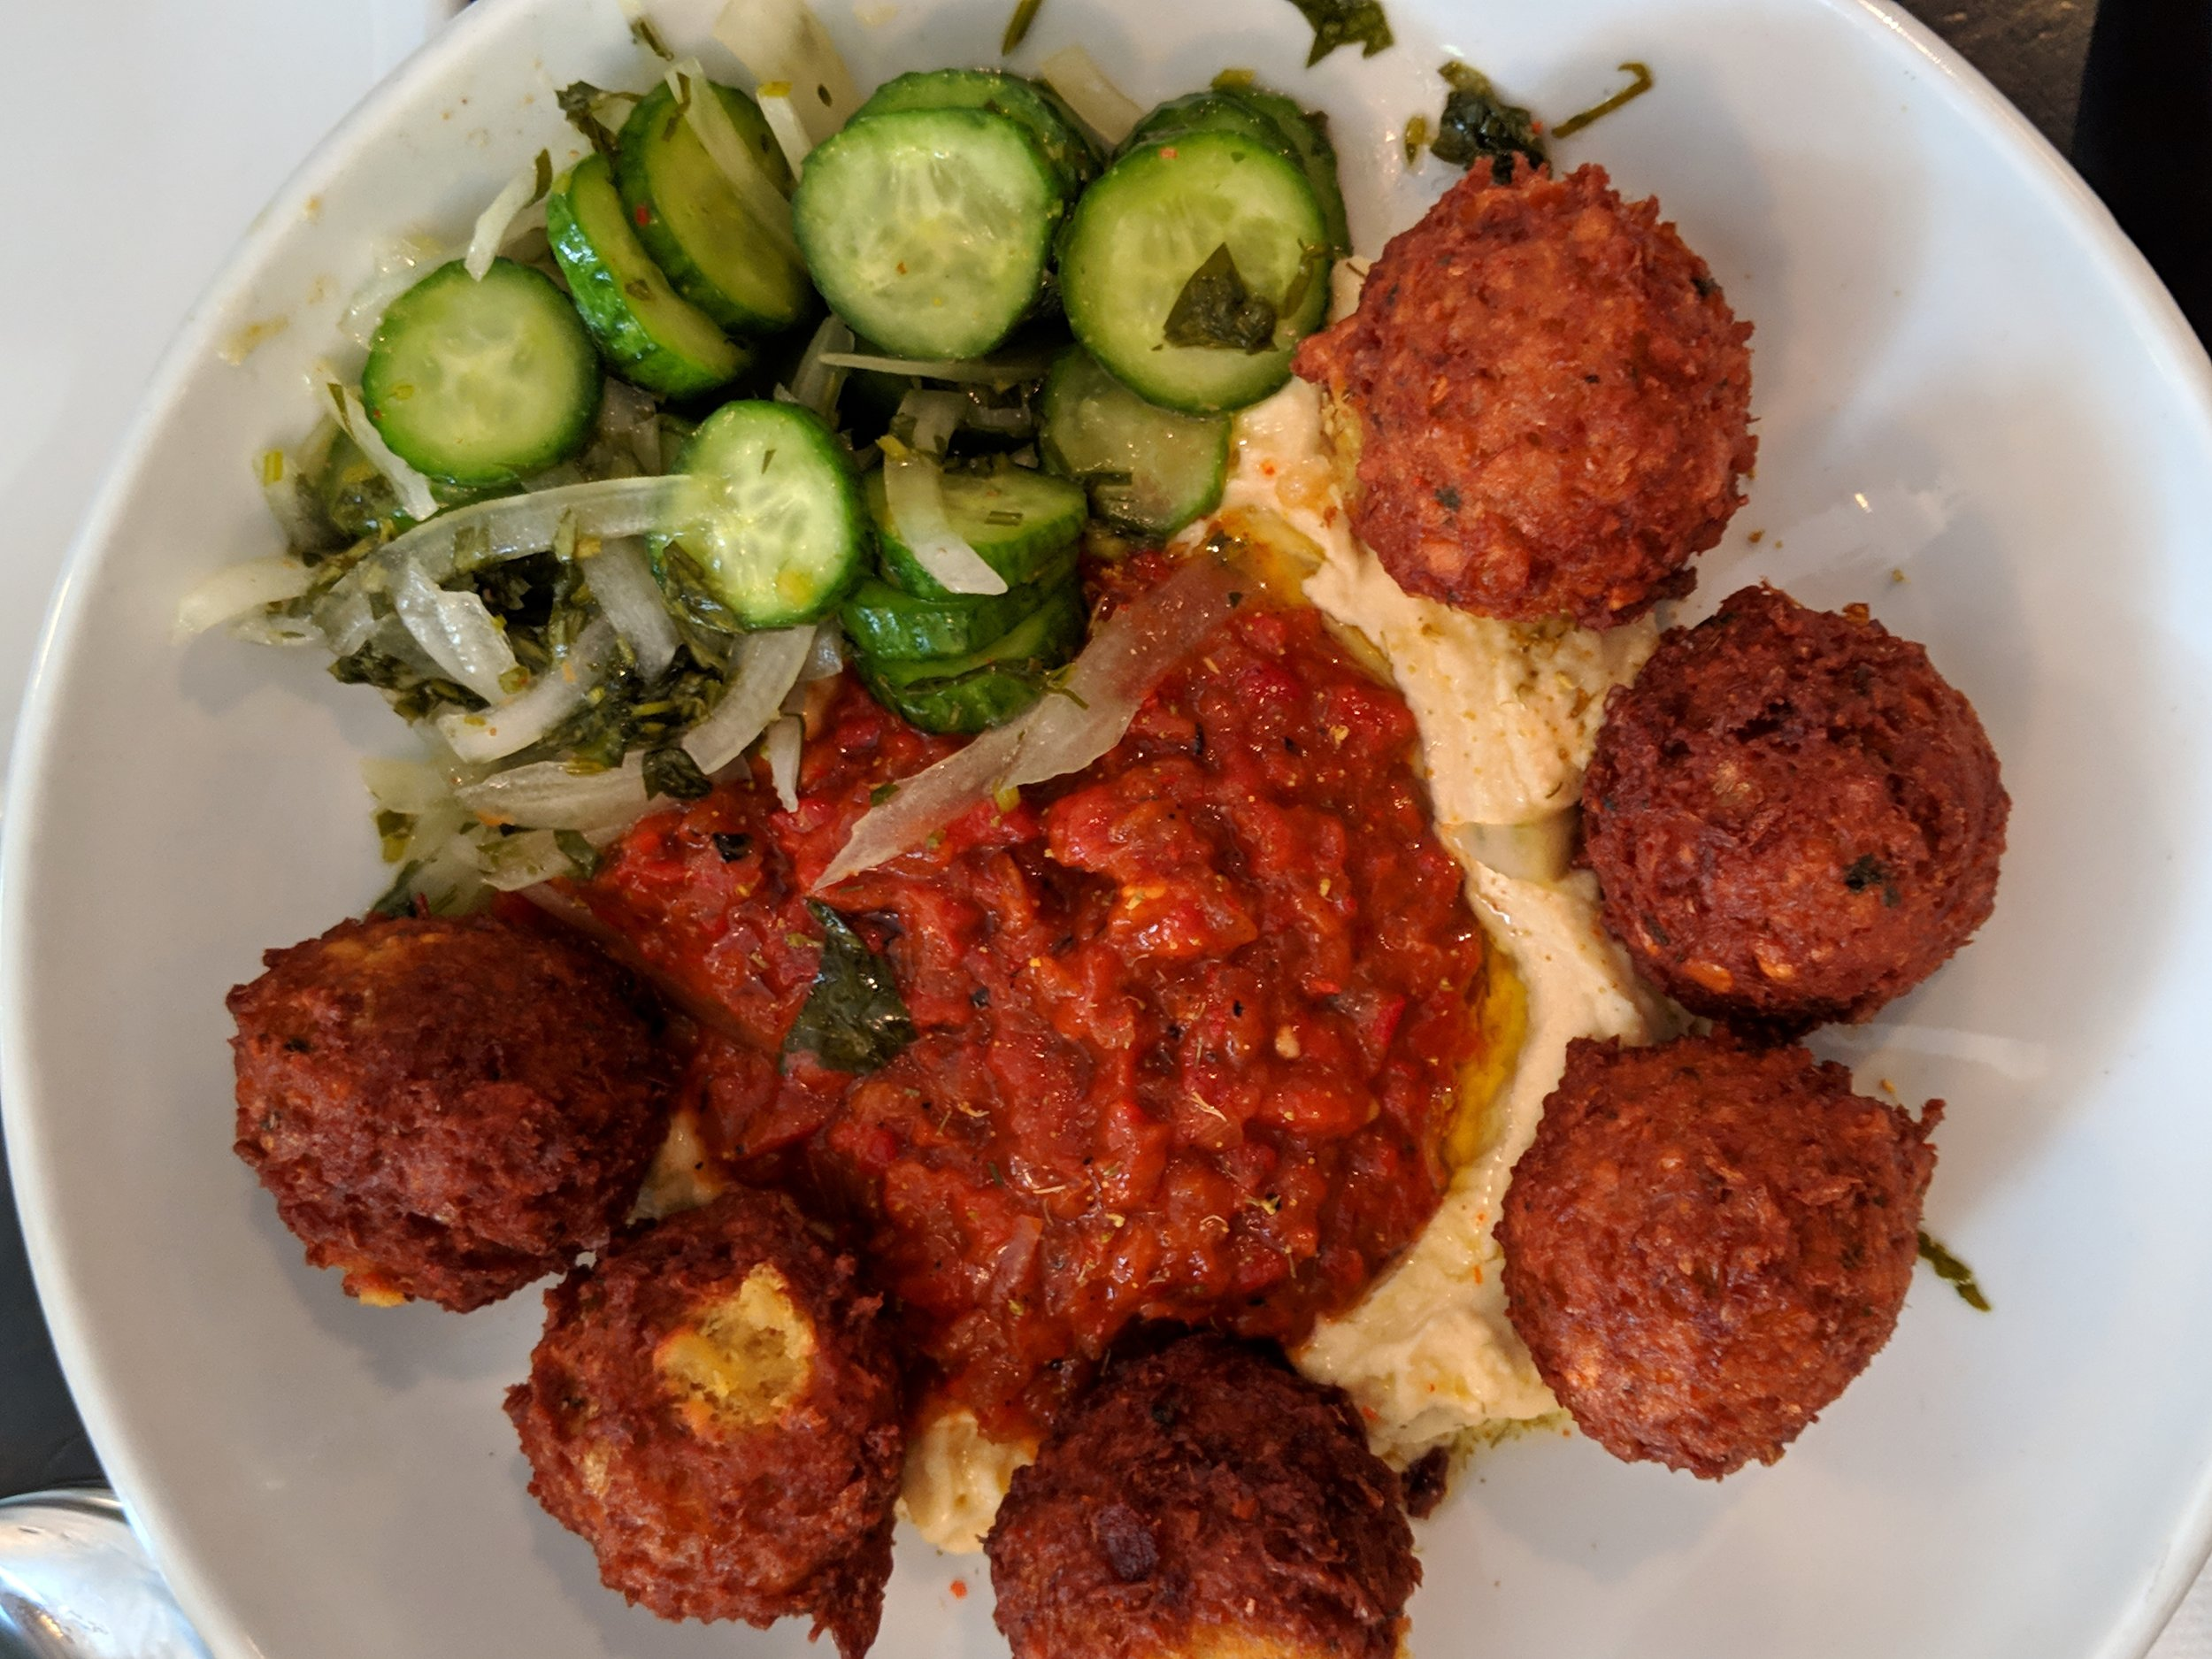 Falafel  with hummus, cucumber and harissa